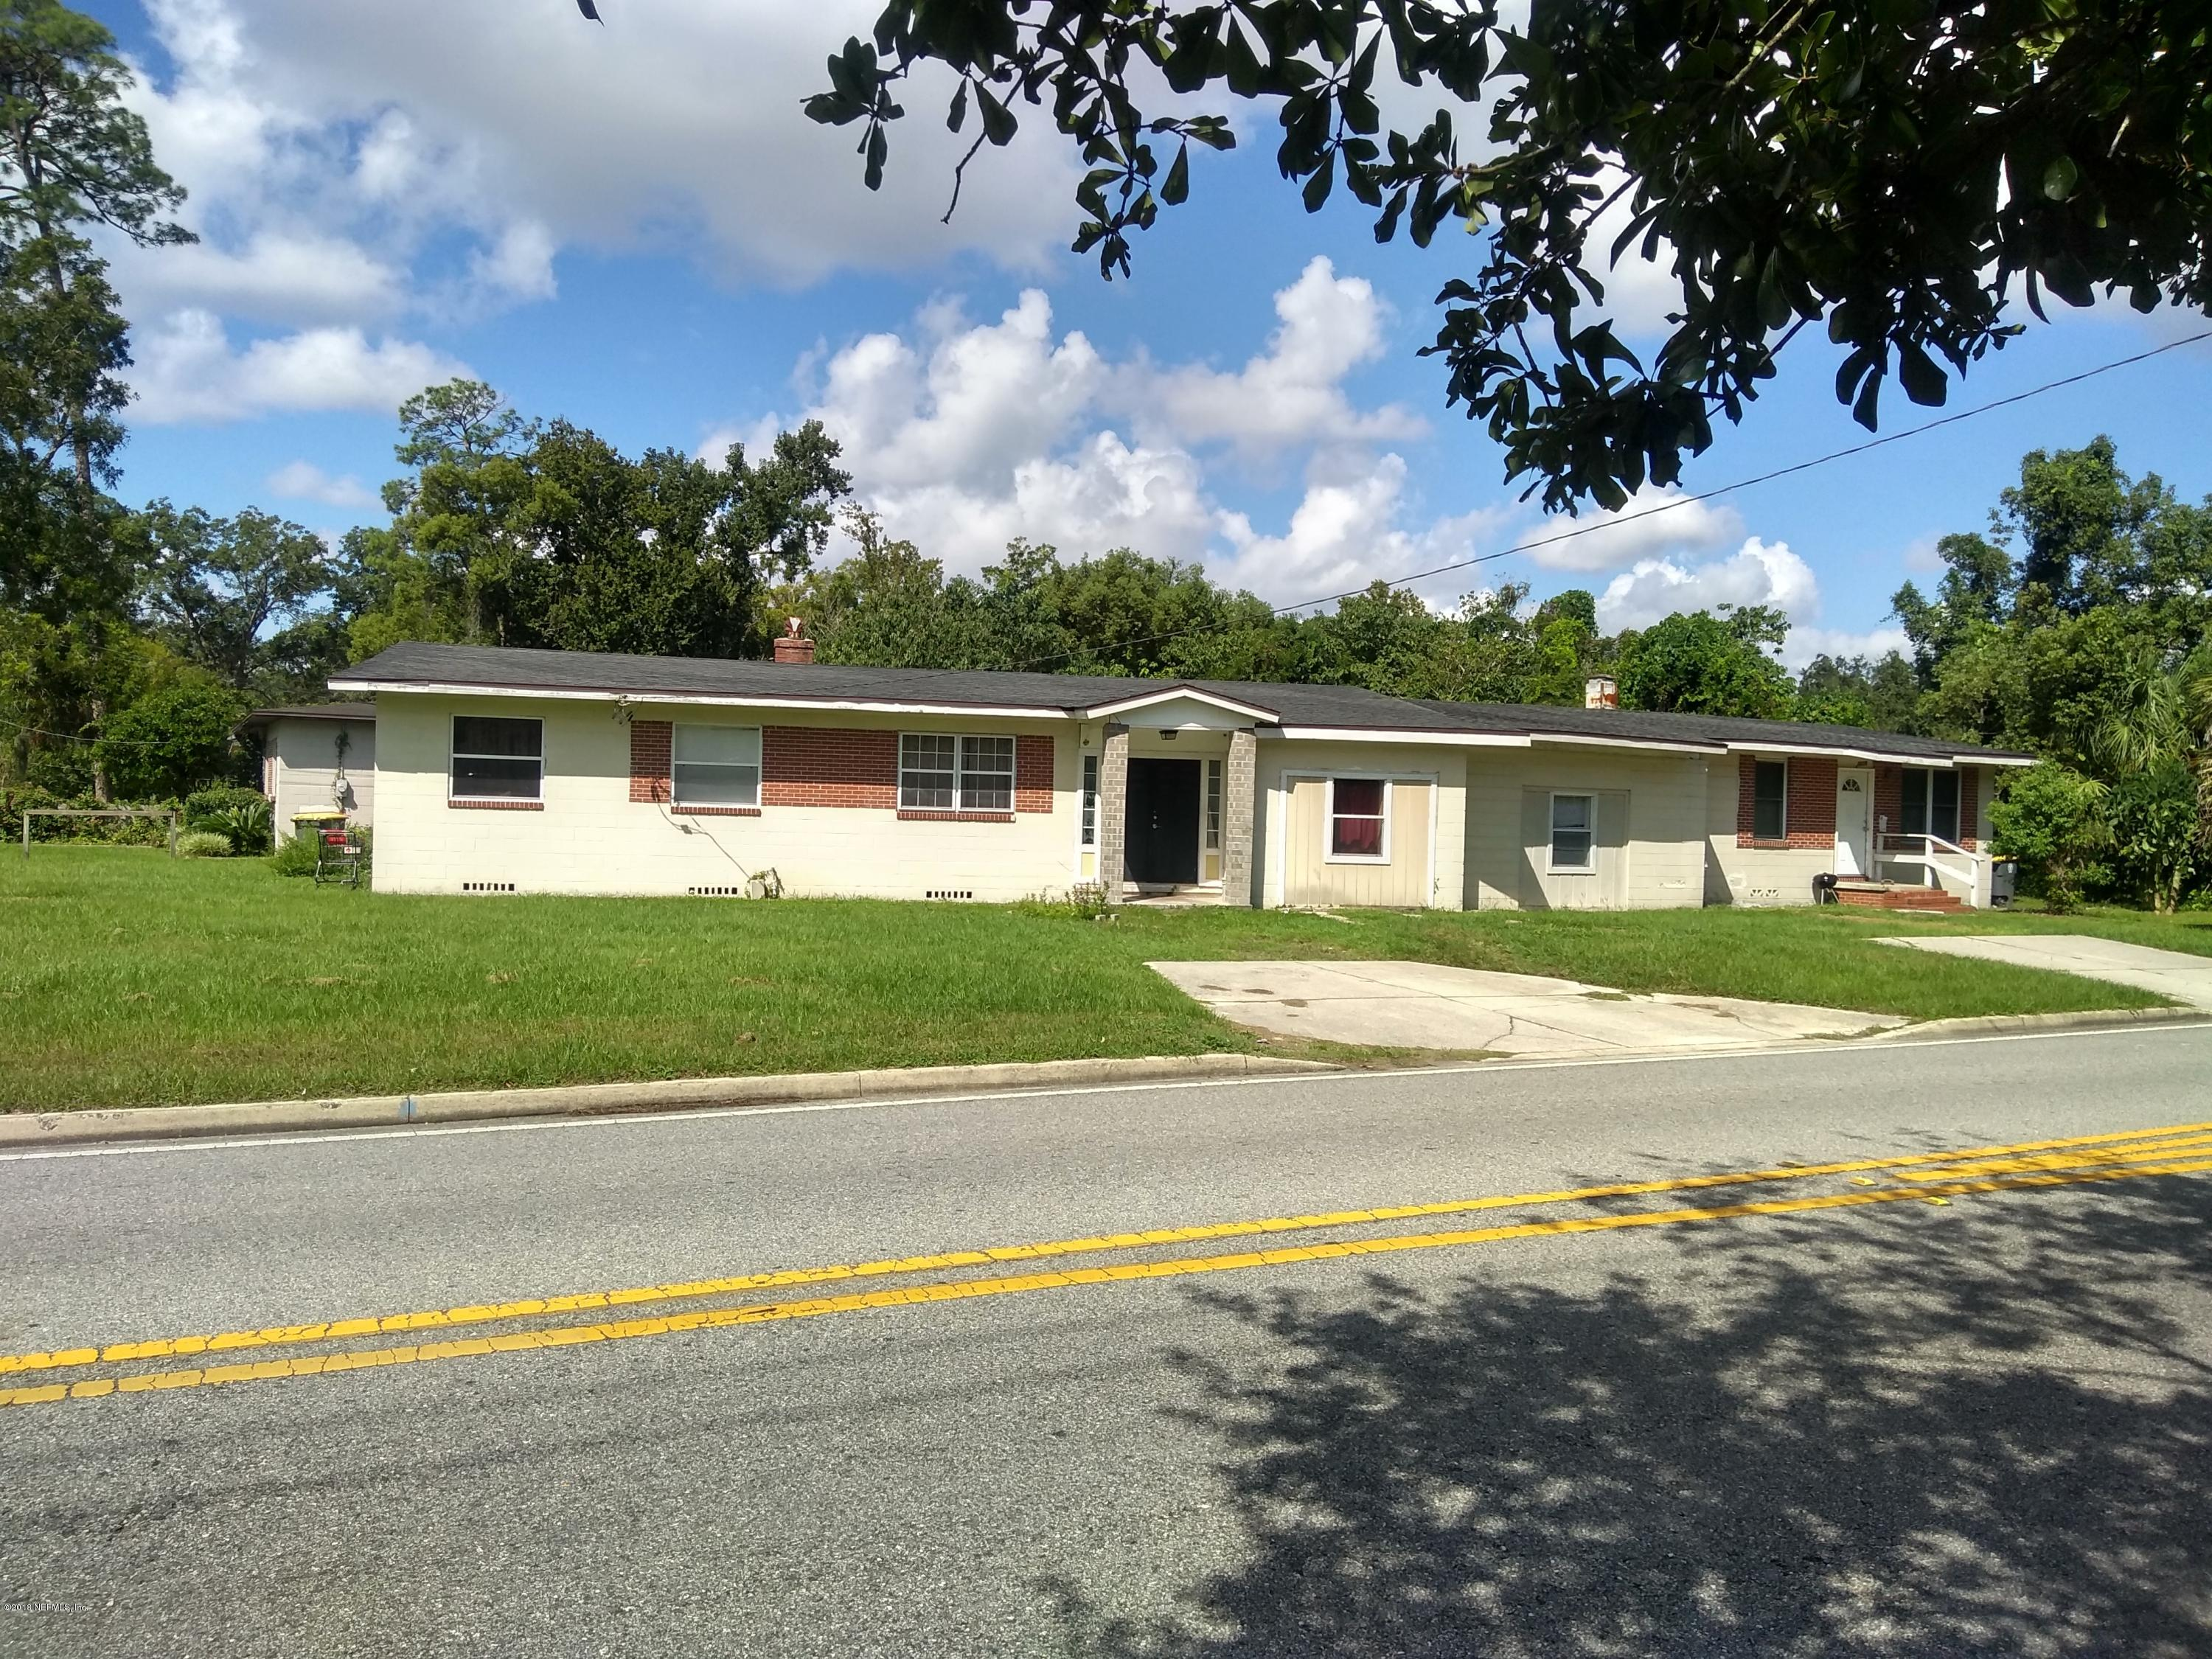 Photo of 3210 SPRING GLEN, JACKSONVILLE, FL 32207